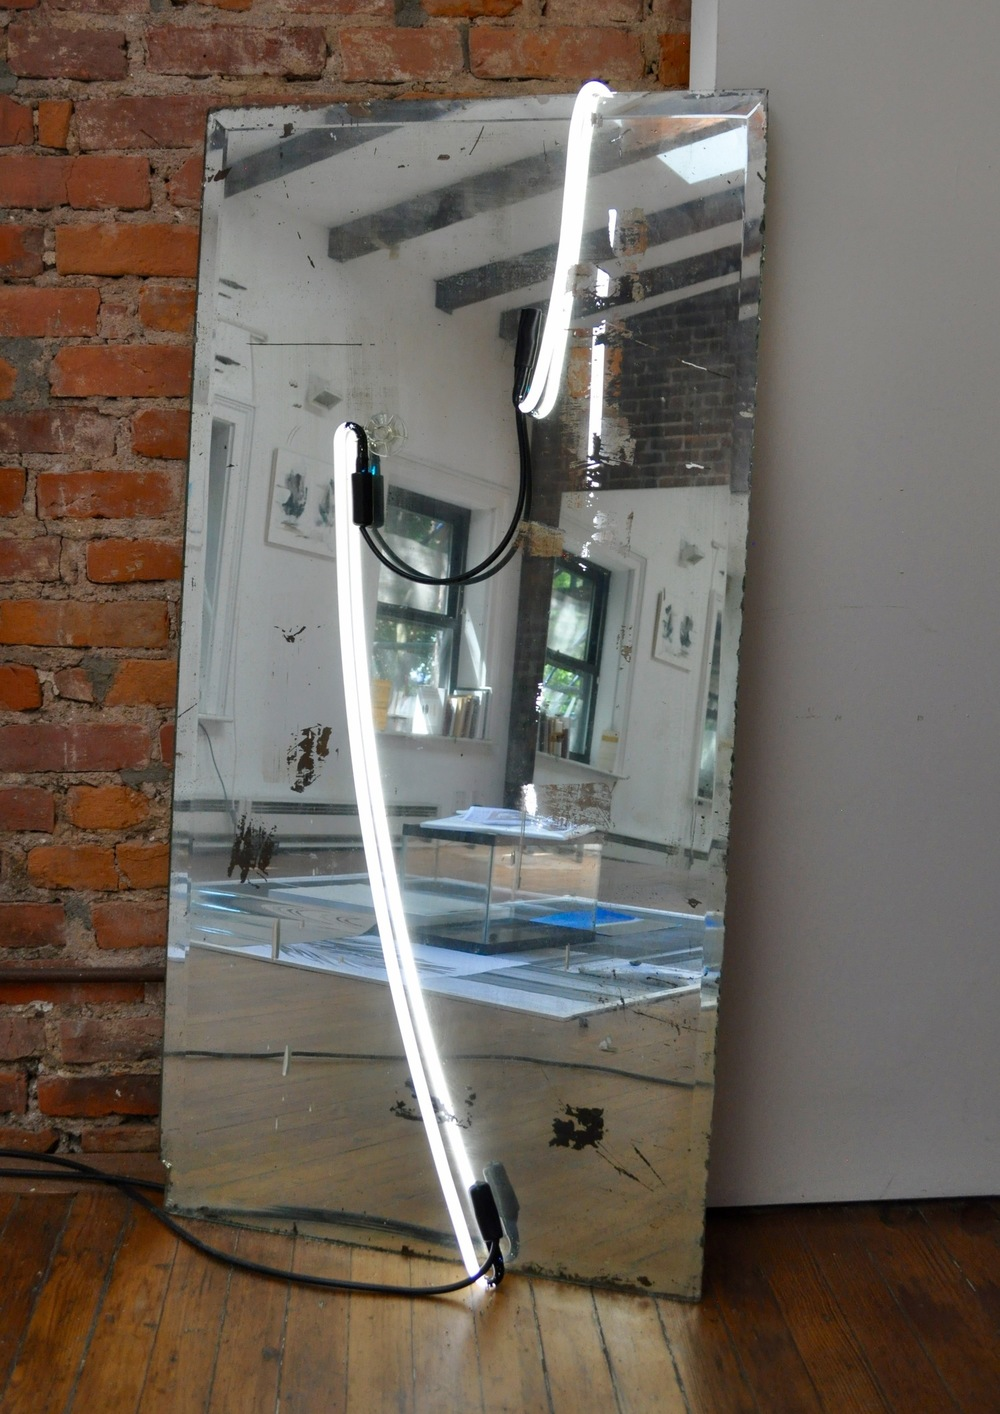 Mirror Piece , vintage mirror, neons, electrical cables, suction cup, 122 x 61 cm, 2016